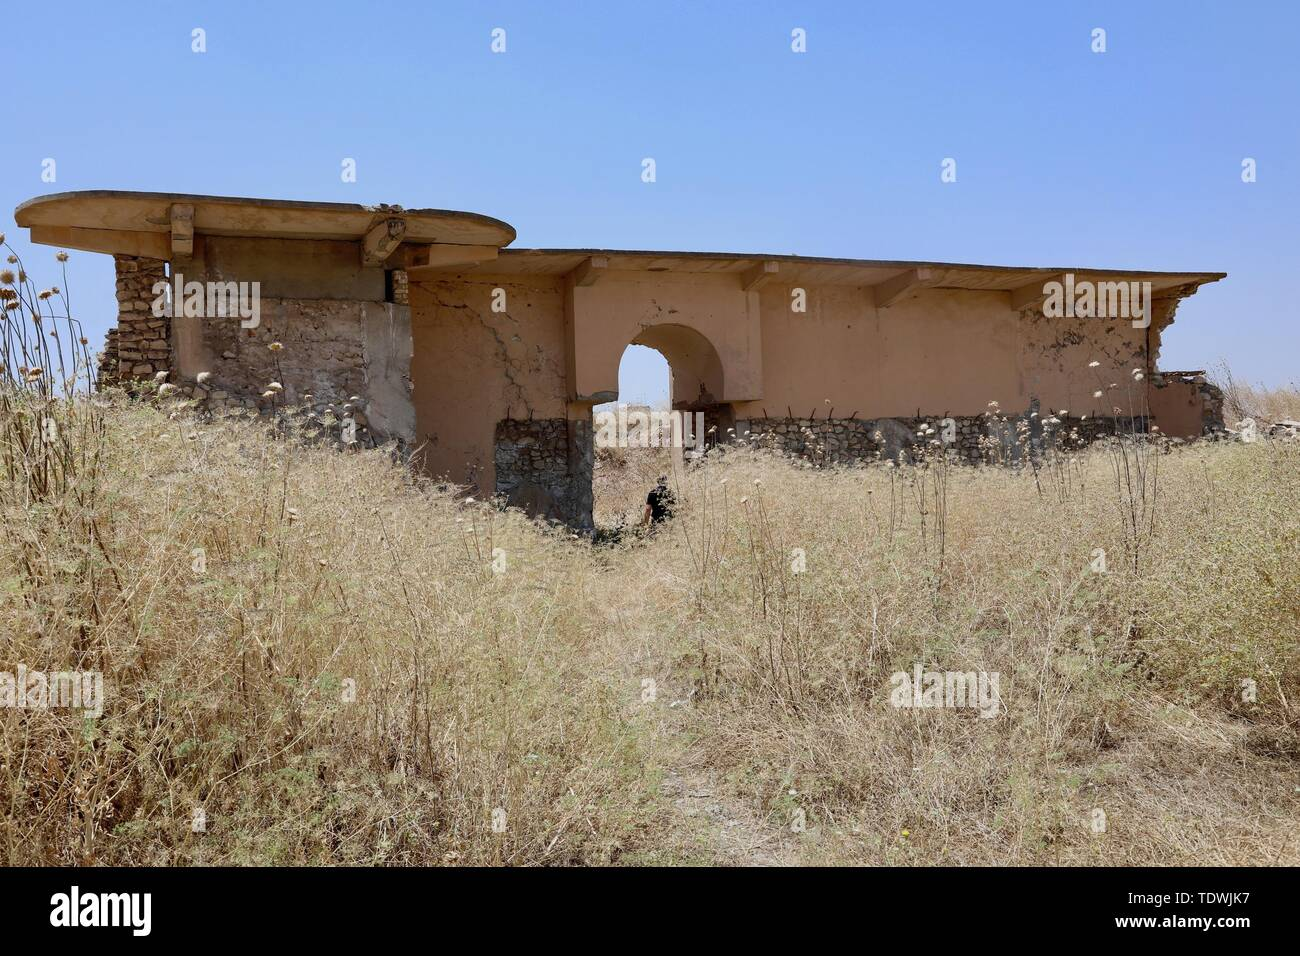 (190619) -- NIMRUD (IRAQ), June 19, 2019 (Xinhua) -- The photo taken on June 13, 2019 shows the destroyed gate of Ashurnasirpal Palace at archeological site of Nimrud, Iraq. Covered with thick layer of wild weeds, massive destruction of ancient palaces, temples and ziggurat left no signs for the Iraq's glorious archeological site of Nimrud after nearly three years of liberation from Islamic State (IS). (Xinhua) TO GO WITH Feature: Iraqi archaeological site lies in ruins after nearly 3 years of liberation from IS - Stock Image